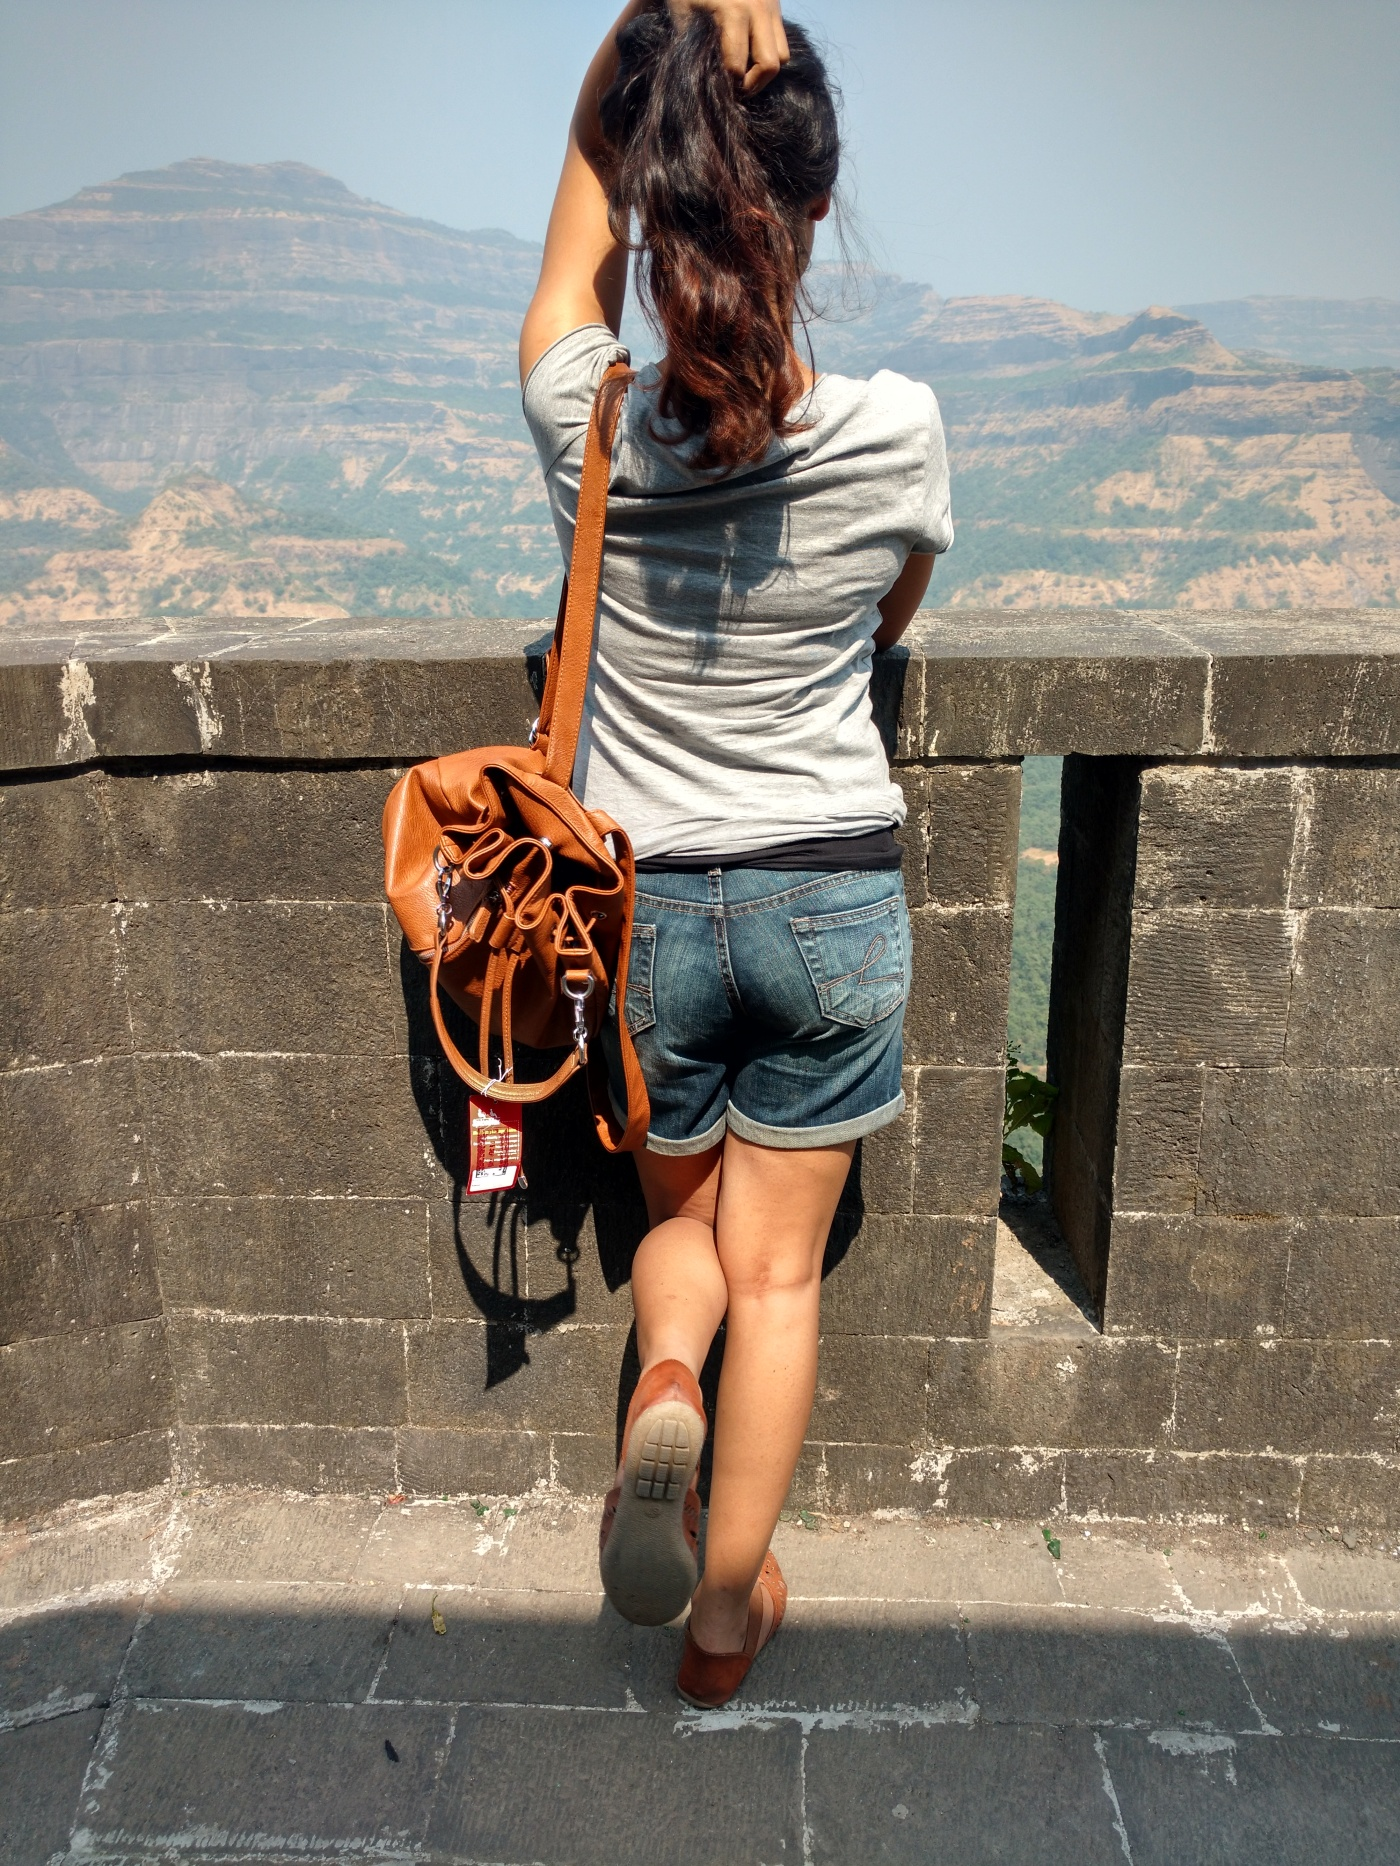 Backpacking in denim shorts and basic grey tee